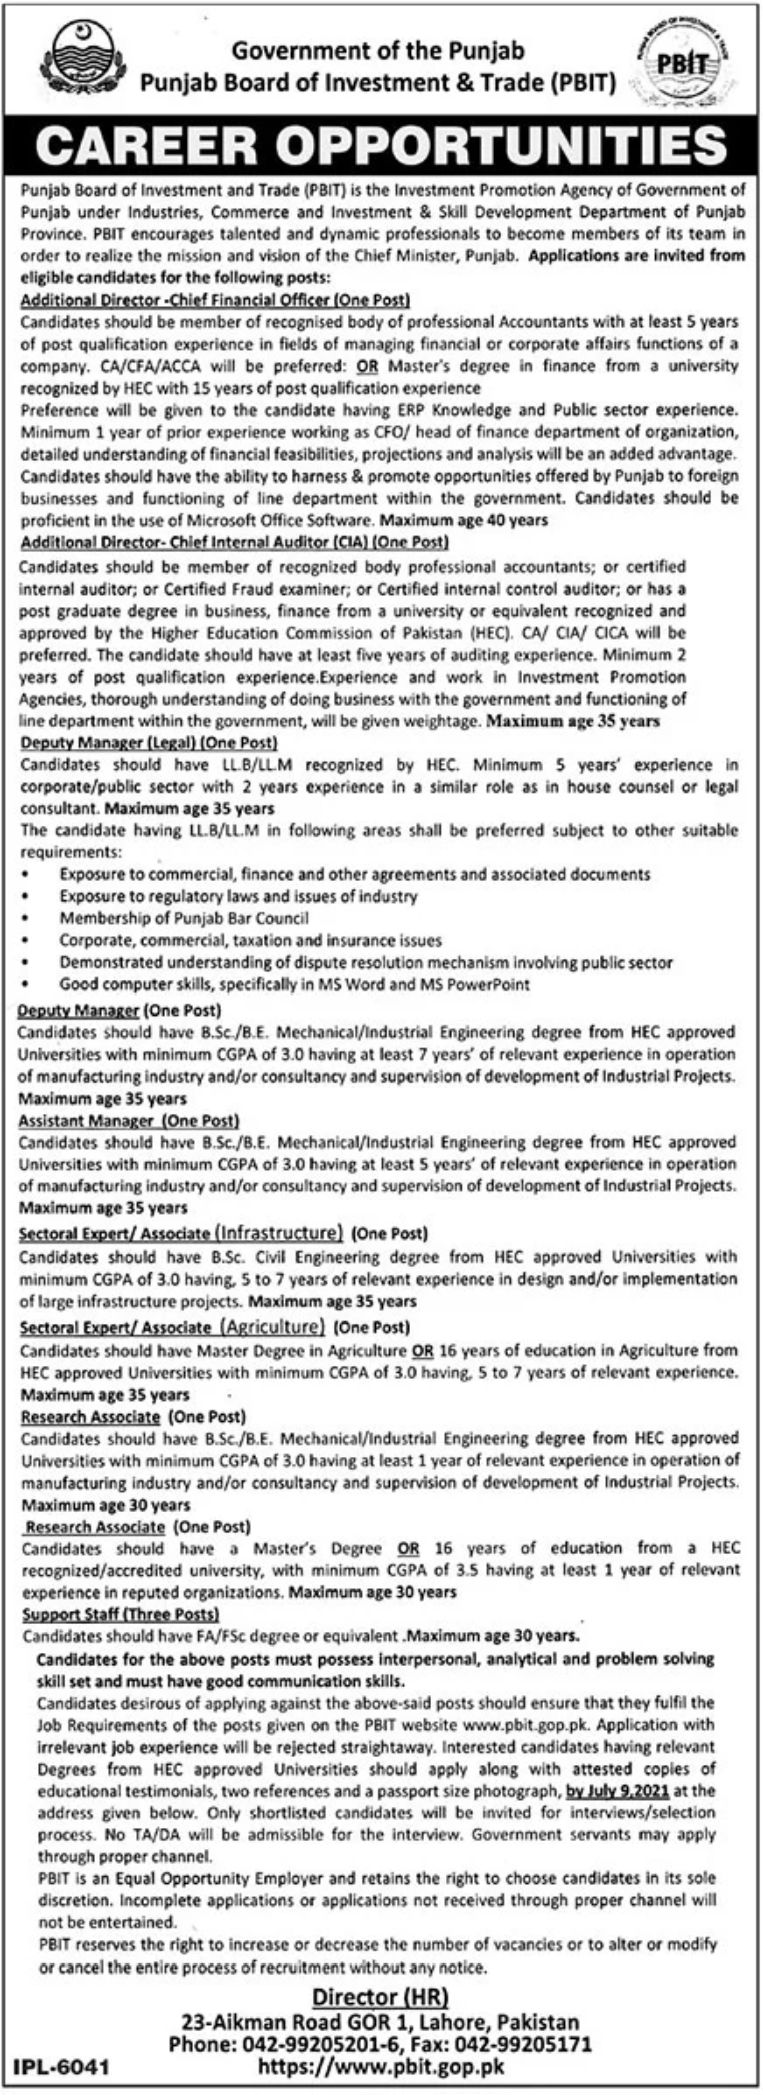 Govt Jobs in Punjab Board of Investment and Trade PBIT 2021